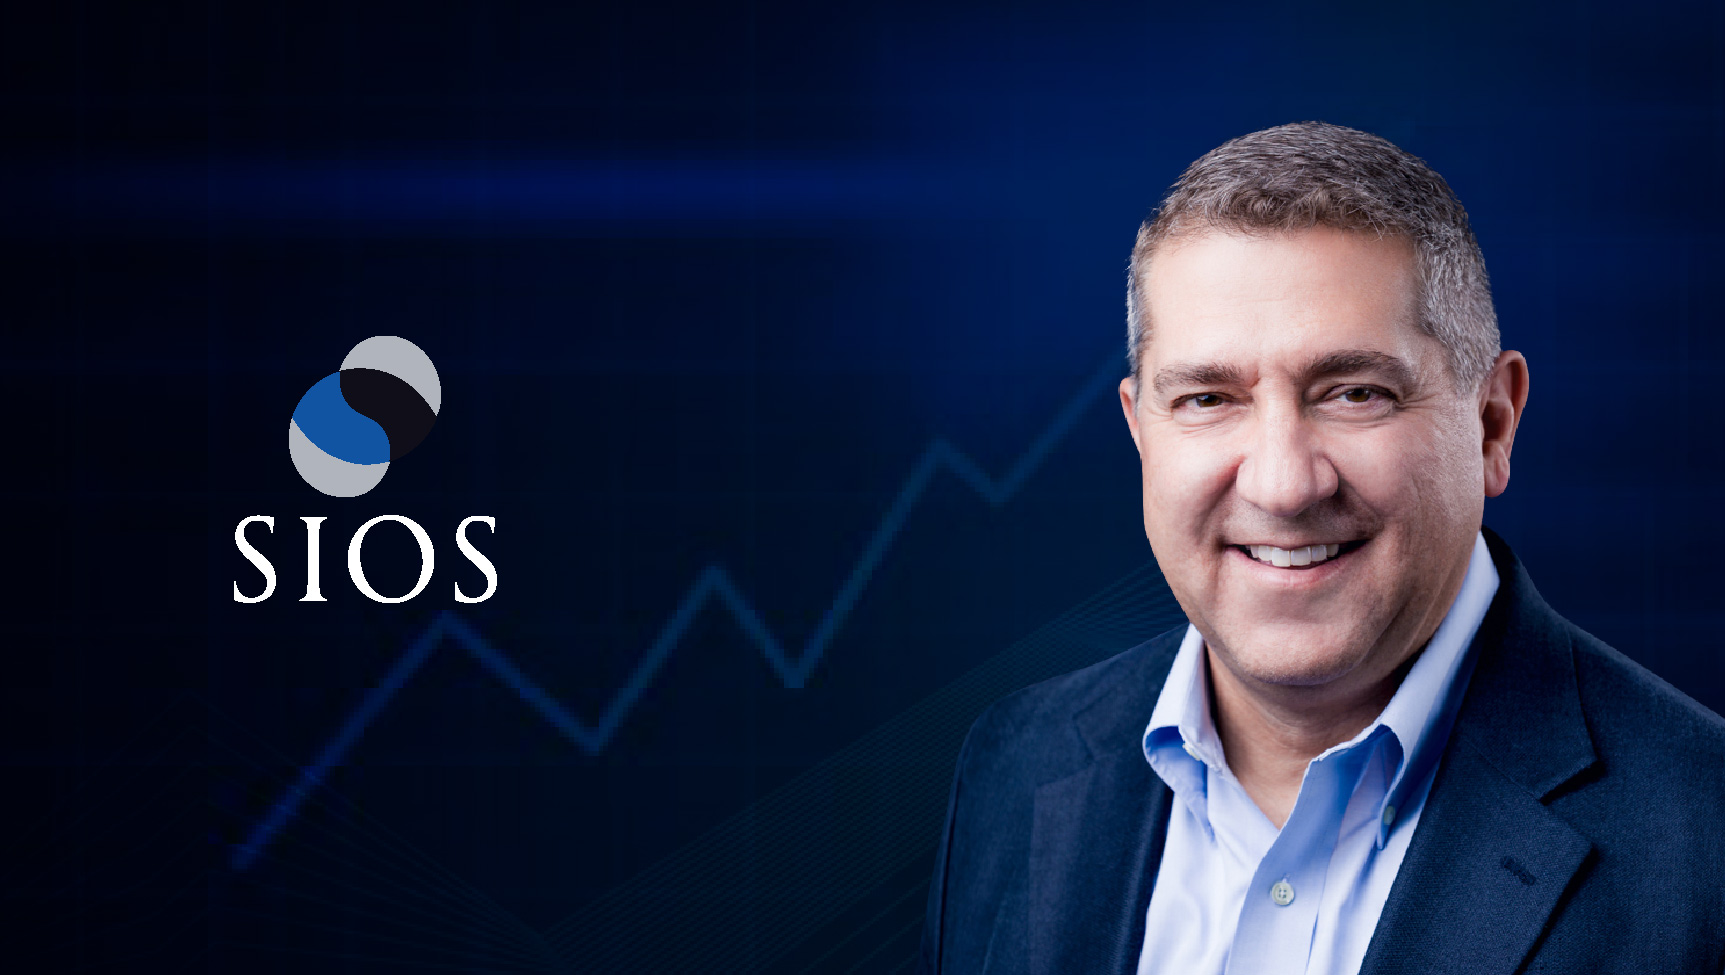 SalesTech Star Interview with Jim Caro, SVP of Sales at SIOS Technology